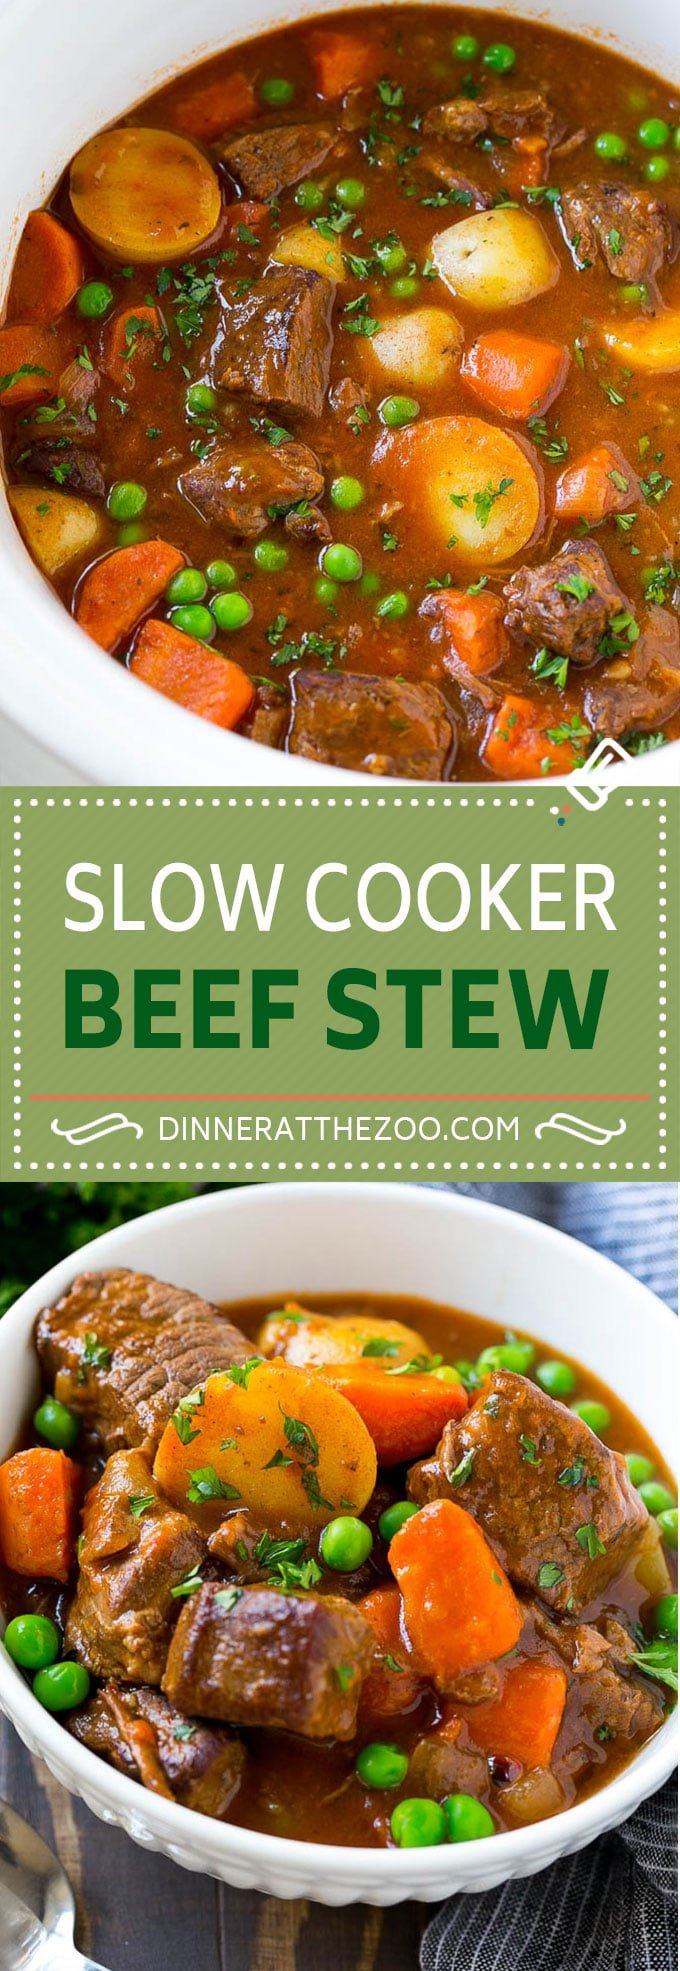 Slow Cooker Beef Stew Recipe | Beef and Potato Stew | Crock Pot Beef Stew | Easy Beef Stew #beef #beefstew #soup #slowcooker #crockpot #dinner #dinneratthezoo